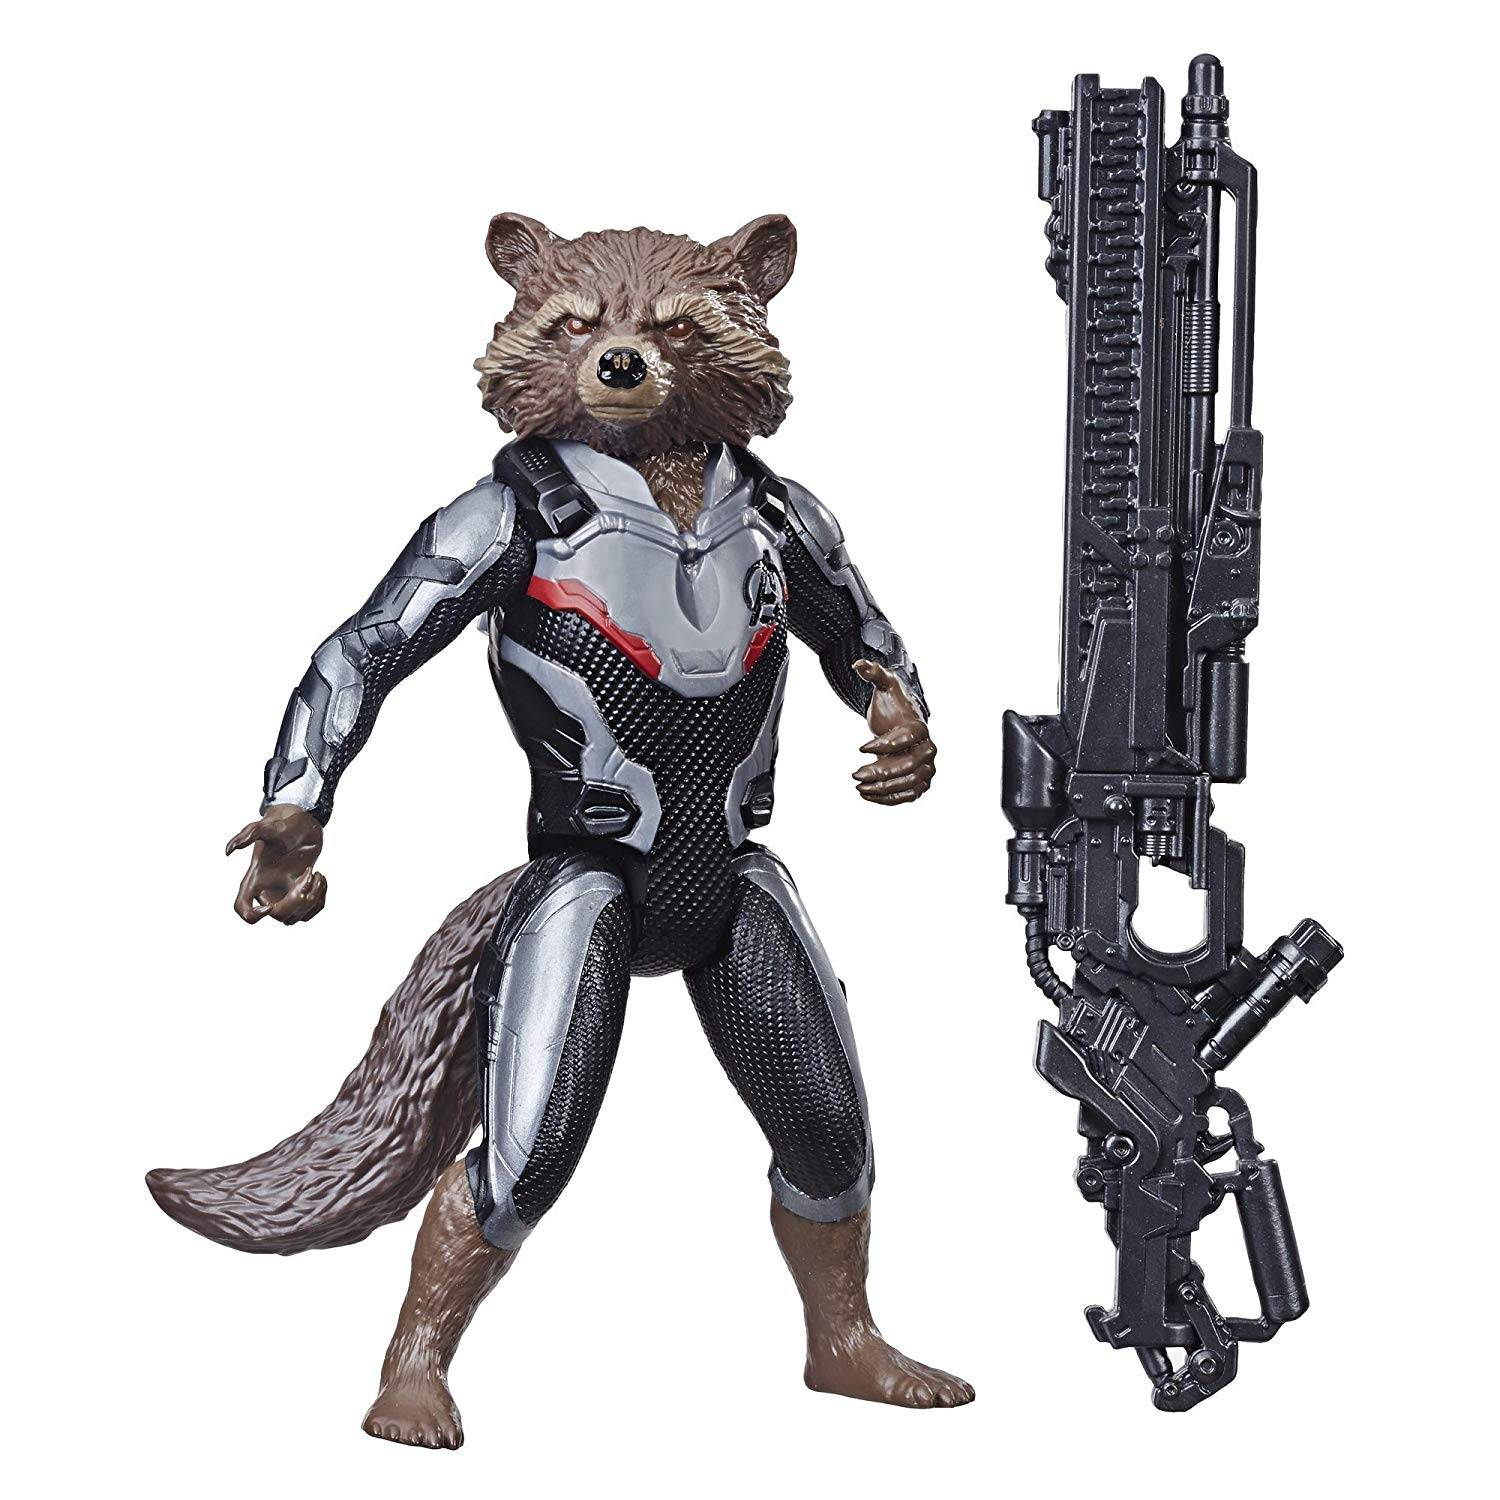 Titan Marvel Avengers Titan Hero Rocket Raccoon (E3917)